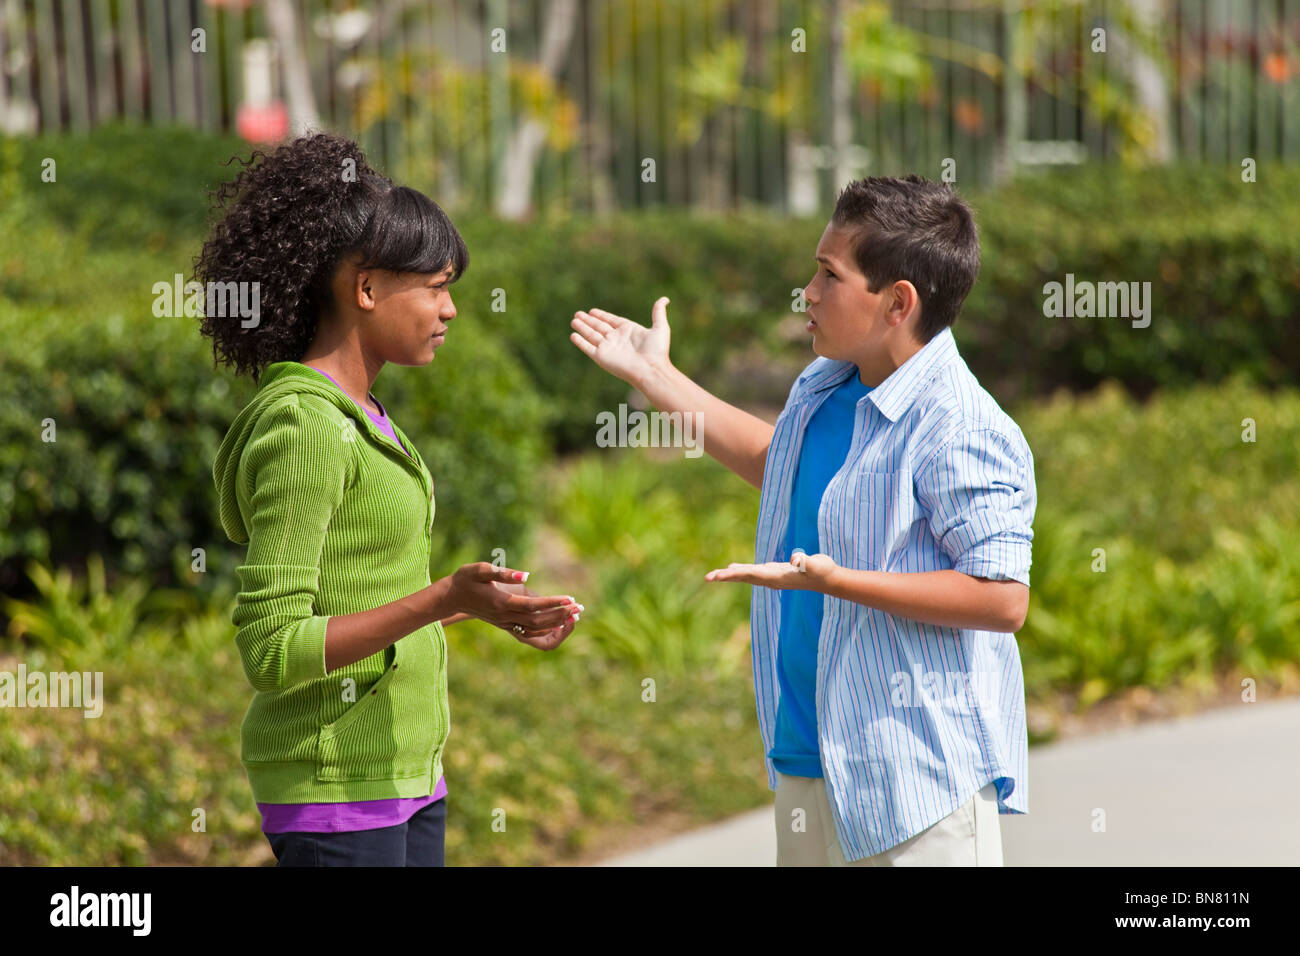 California Multi ethnic racial Ethnically diverse group teenagers African American teens talking enthusiastic conversation - Stock Image